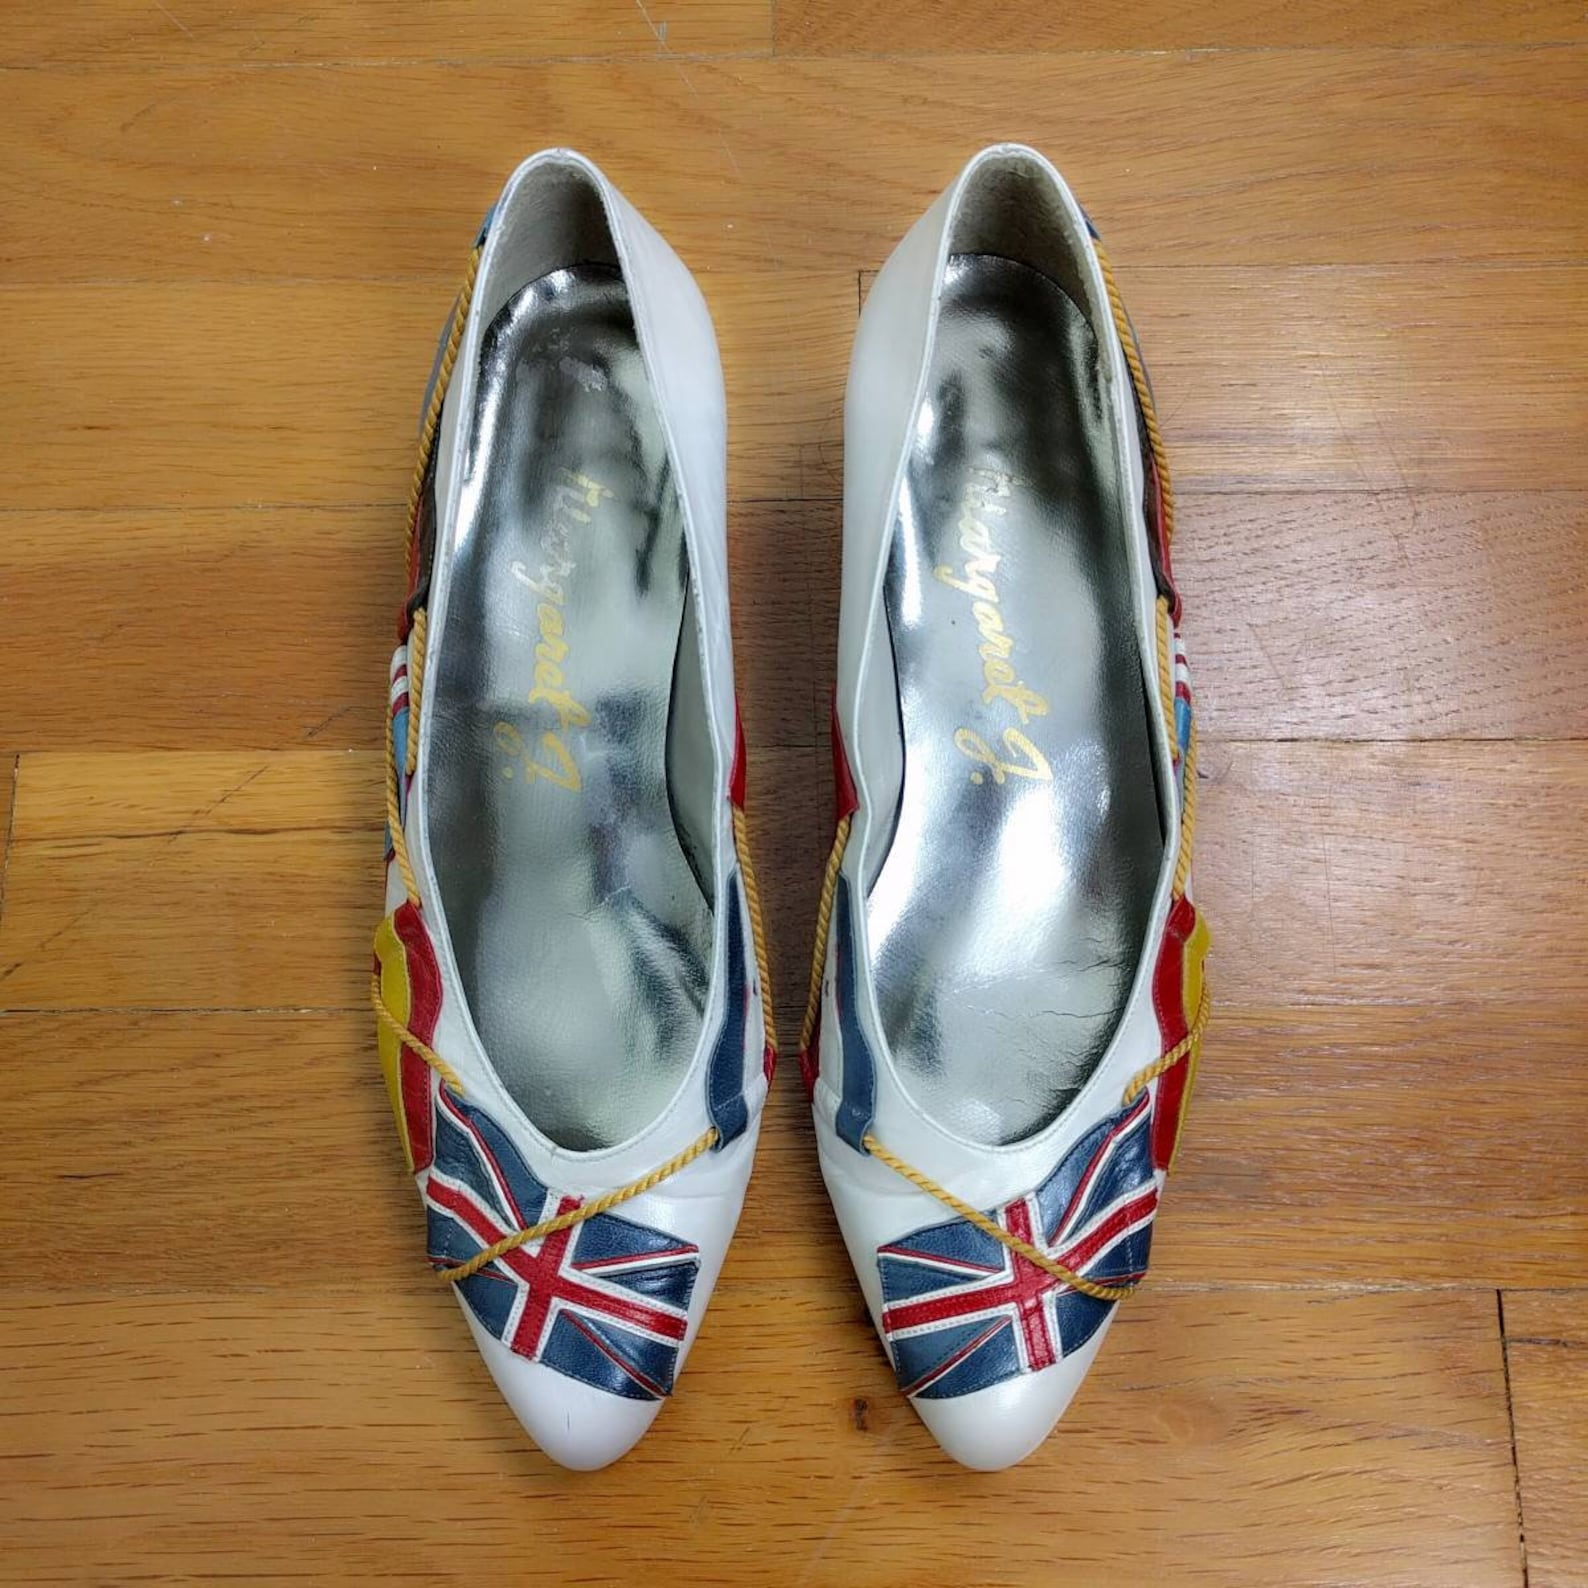 vintage 1980s margaret j world flags pearl metallic leather low ballet pumps 6